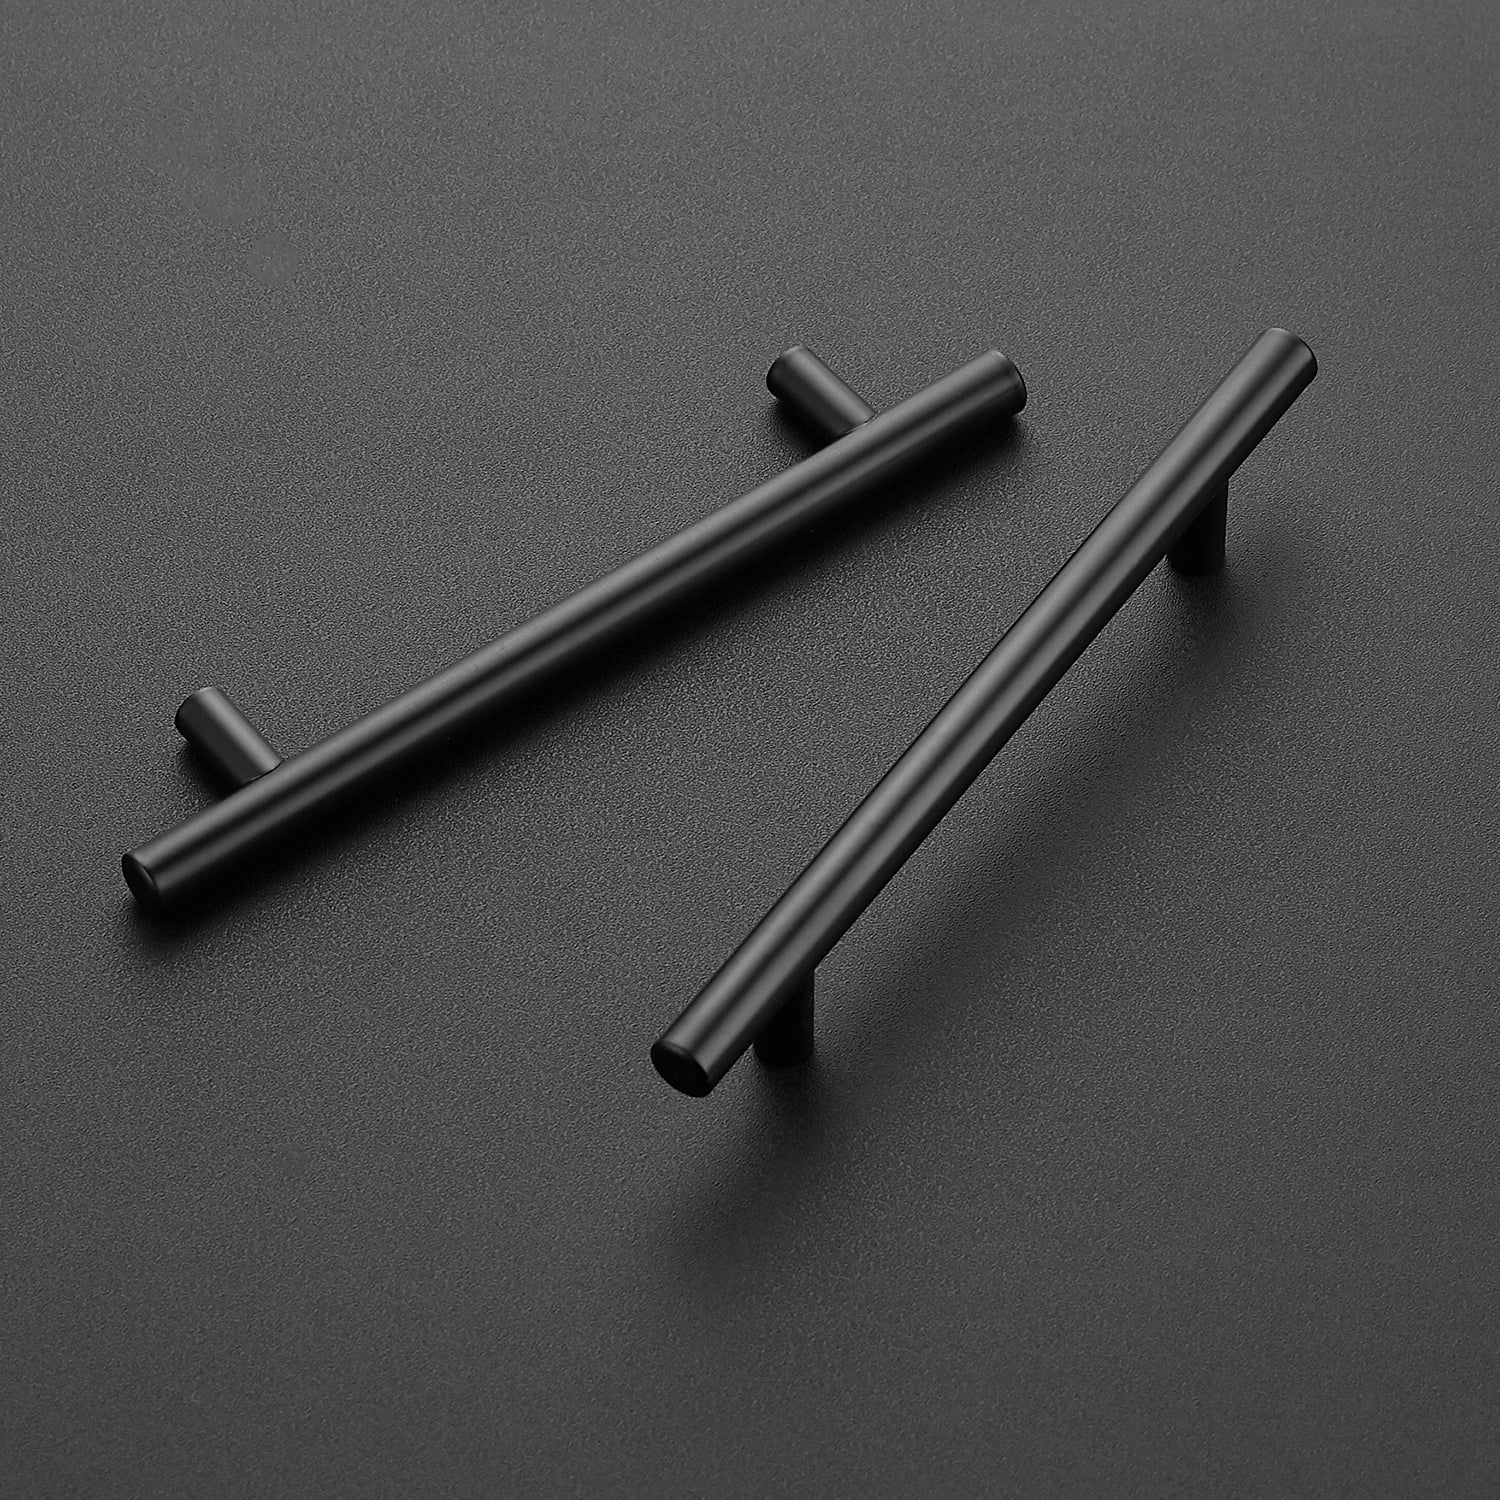 30 Pack 7.38'' Cabinet Pulls Matte Black Stainless Steel Kitchen Cupboard Handles Cabinet Handles 7.38'' Length, 5'' Hole Center